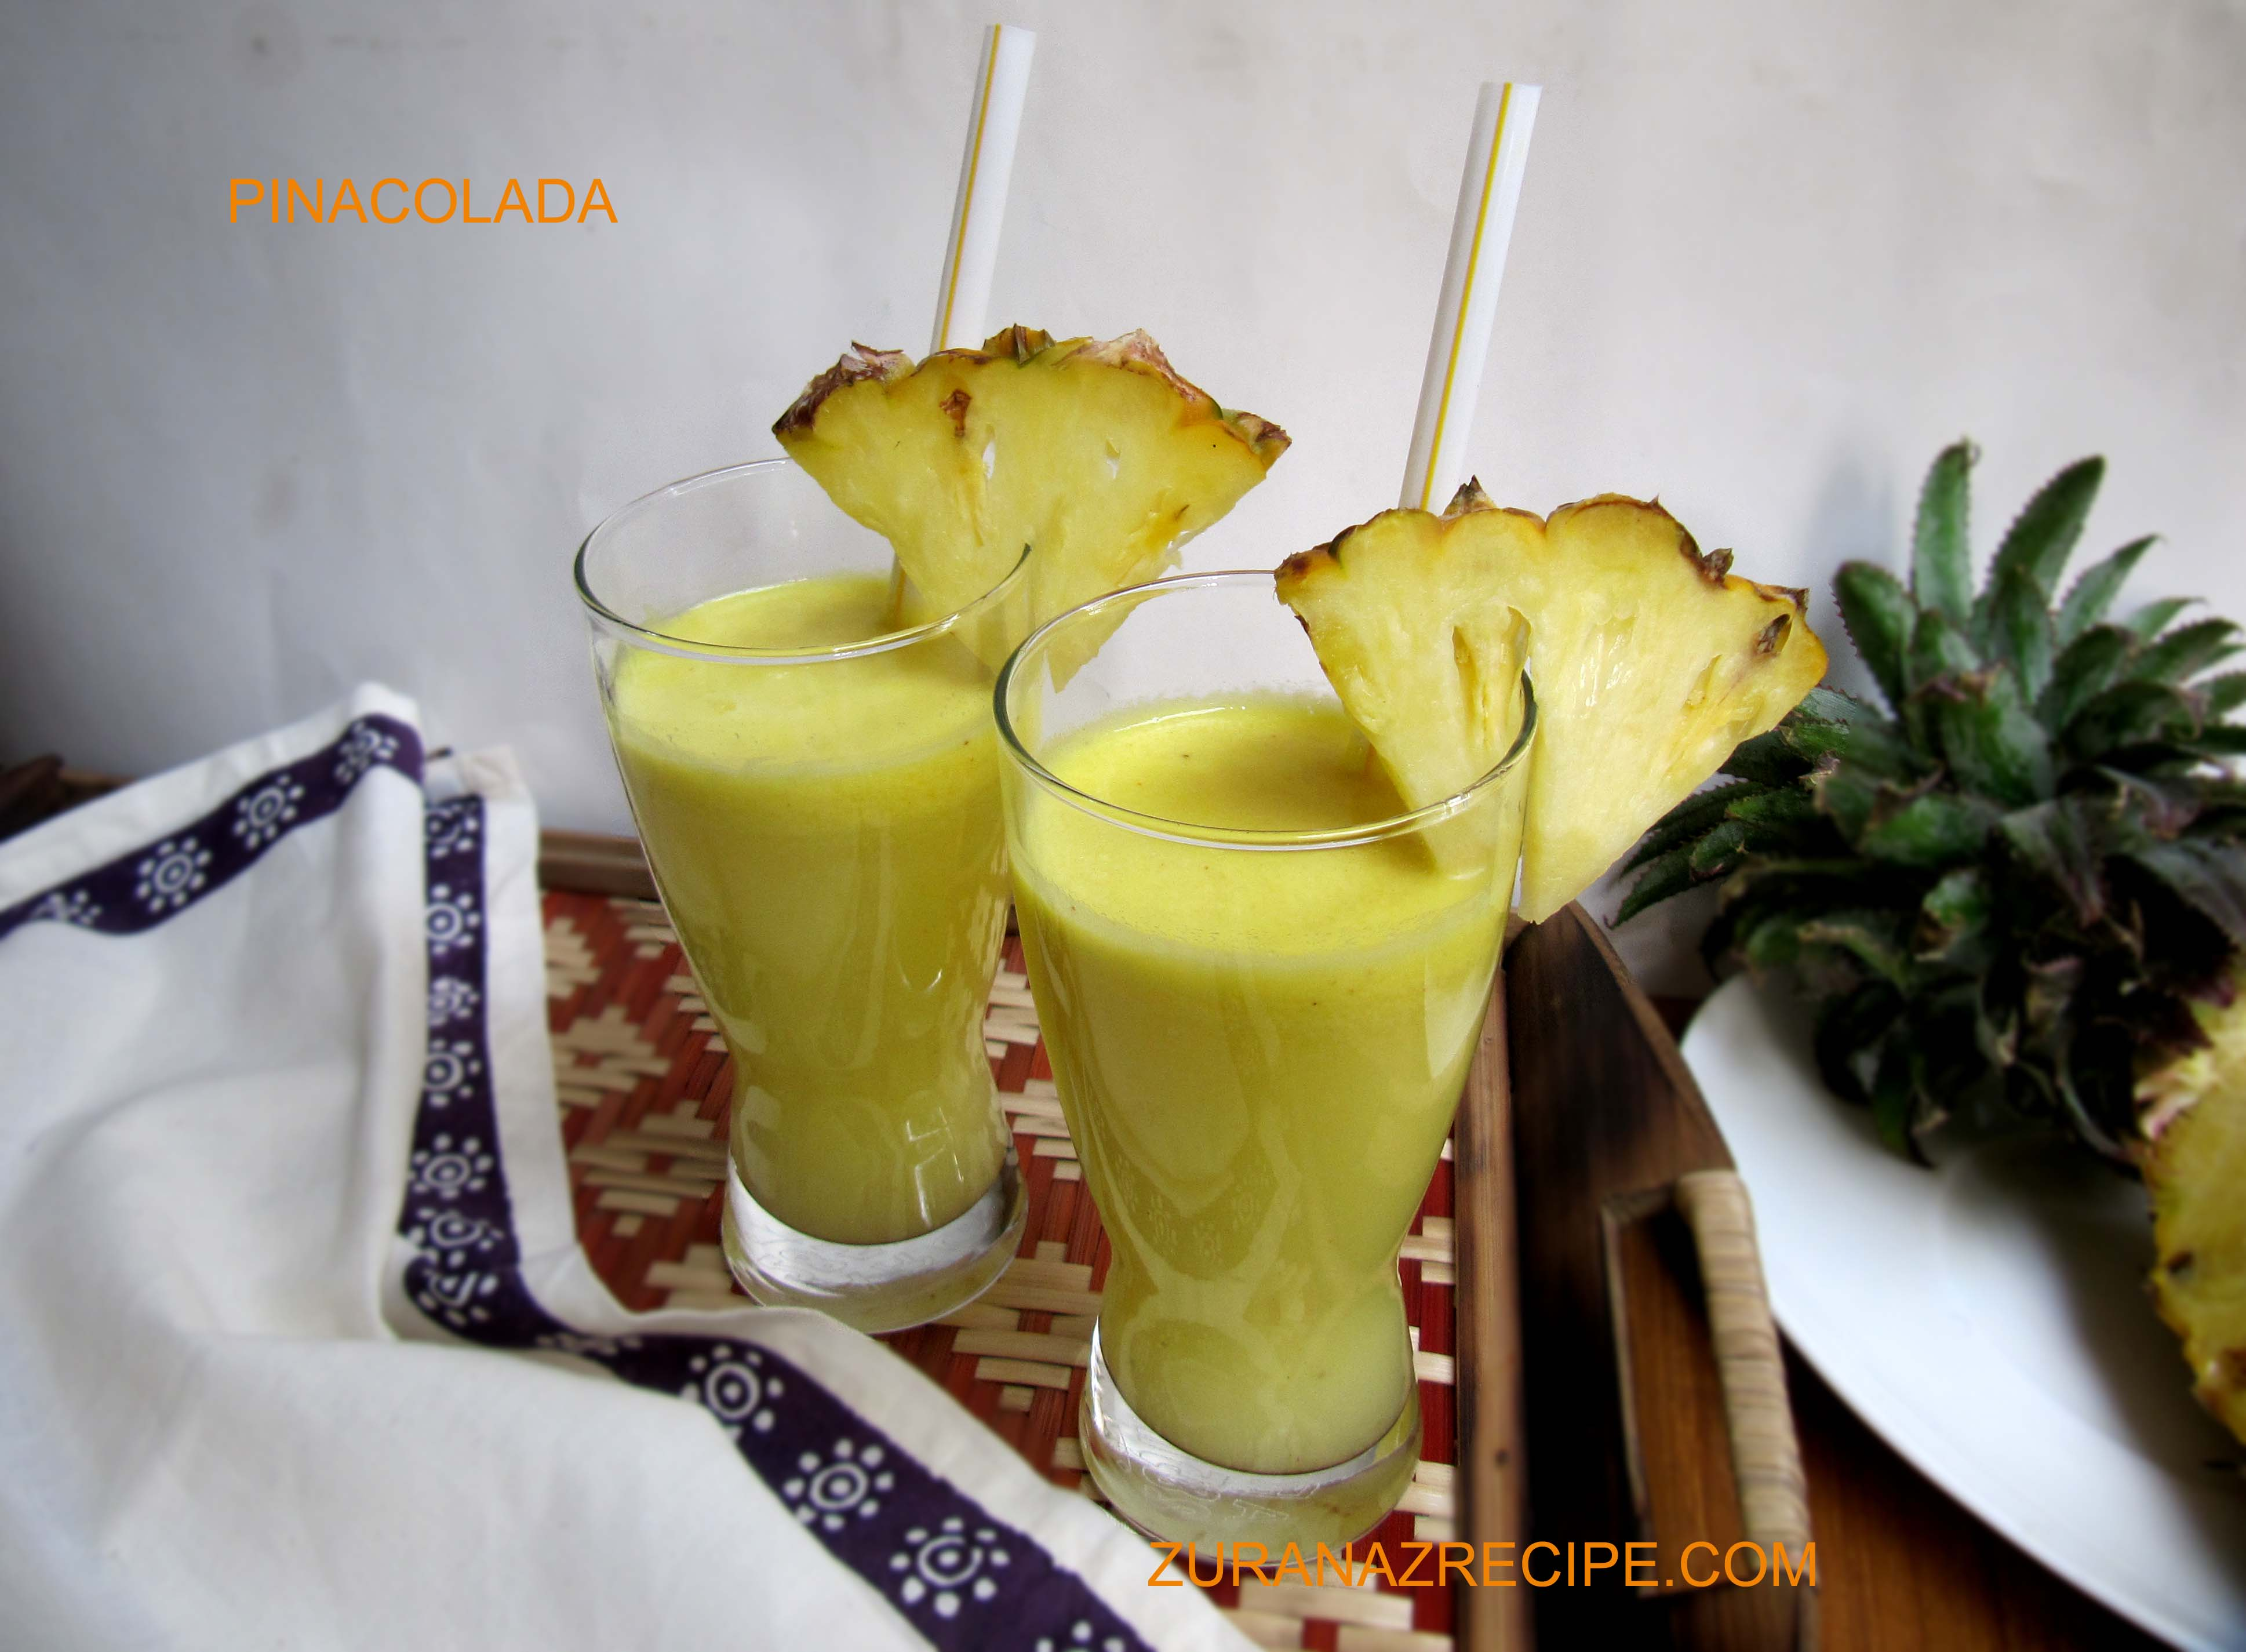 Pinacolada (Pinapple & Coconut Milk Drinks)